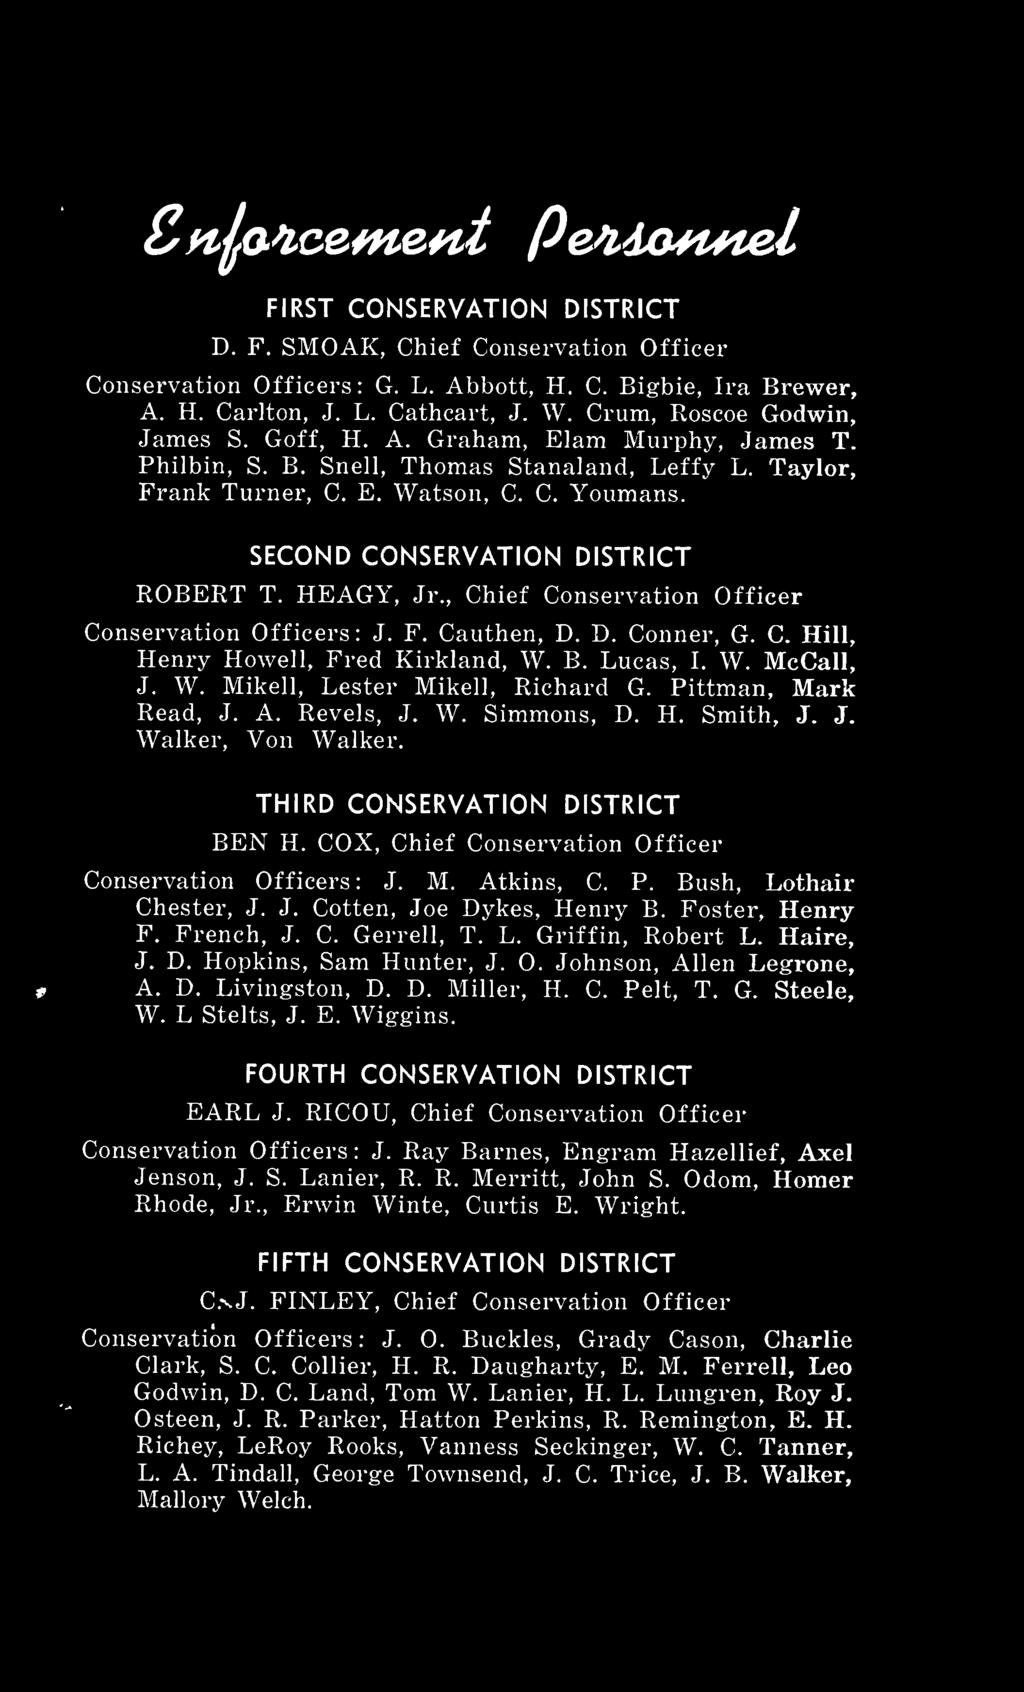 , Chief Conservation Officer Conservation Officers: J. F. Cauthen, D. D. Conner, G. C. Hill, Henry Howell, Fred Kirkland, W. B. Lucas, I. W. McCall, J. W. Mikell, Lester Mikell, Richard G.